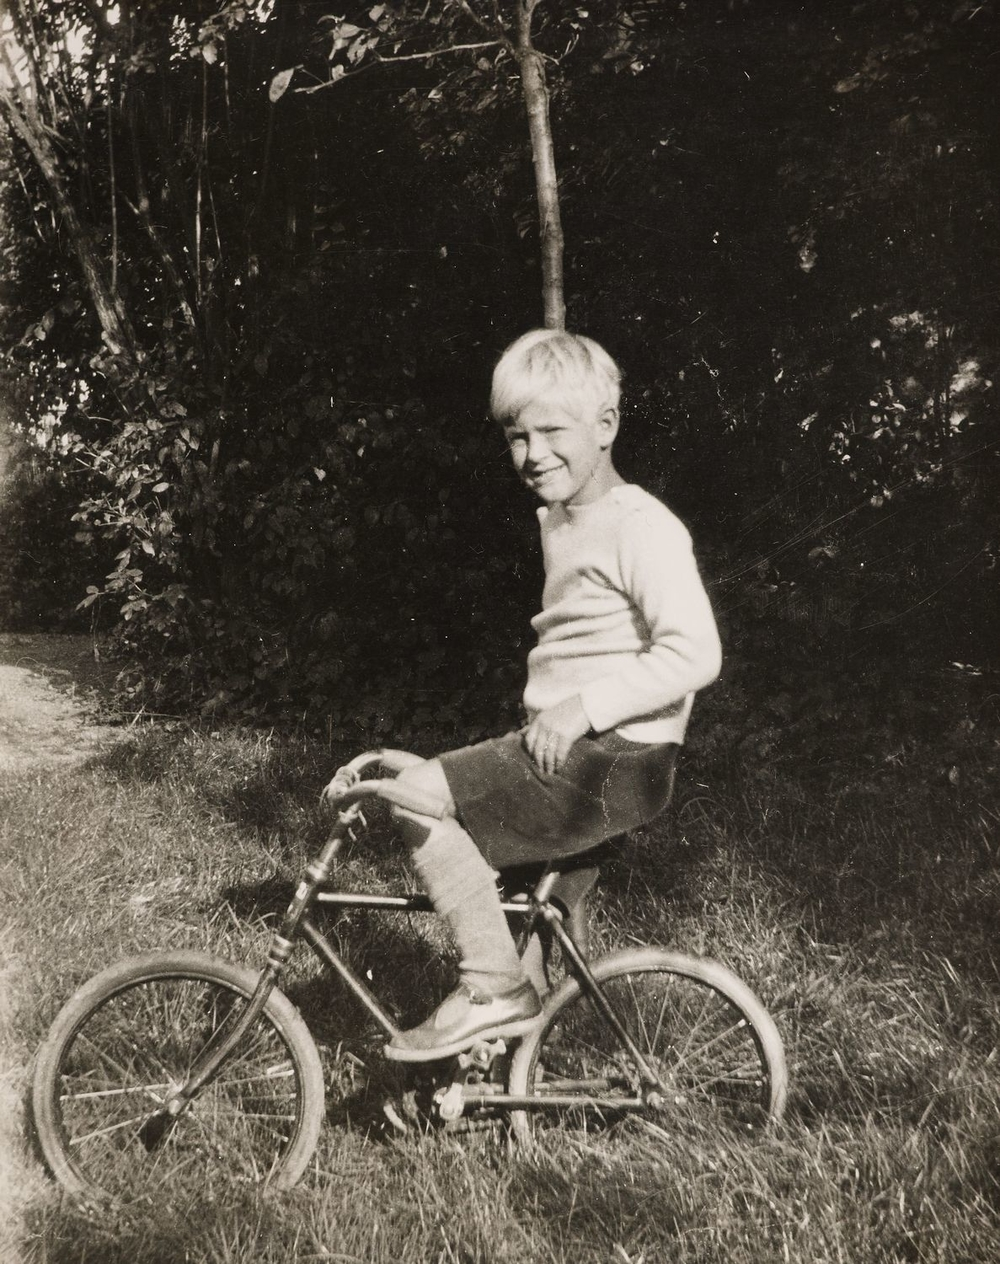 Photograph of Prince Philip of Greece, later HRH The Duke of Edinburgh, seated on a bicycle in left side profile. He faces the viewer, smiling.